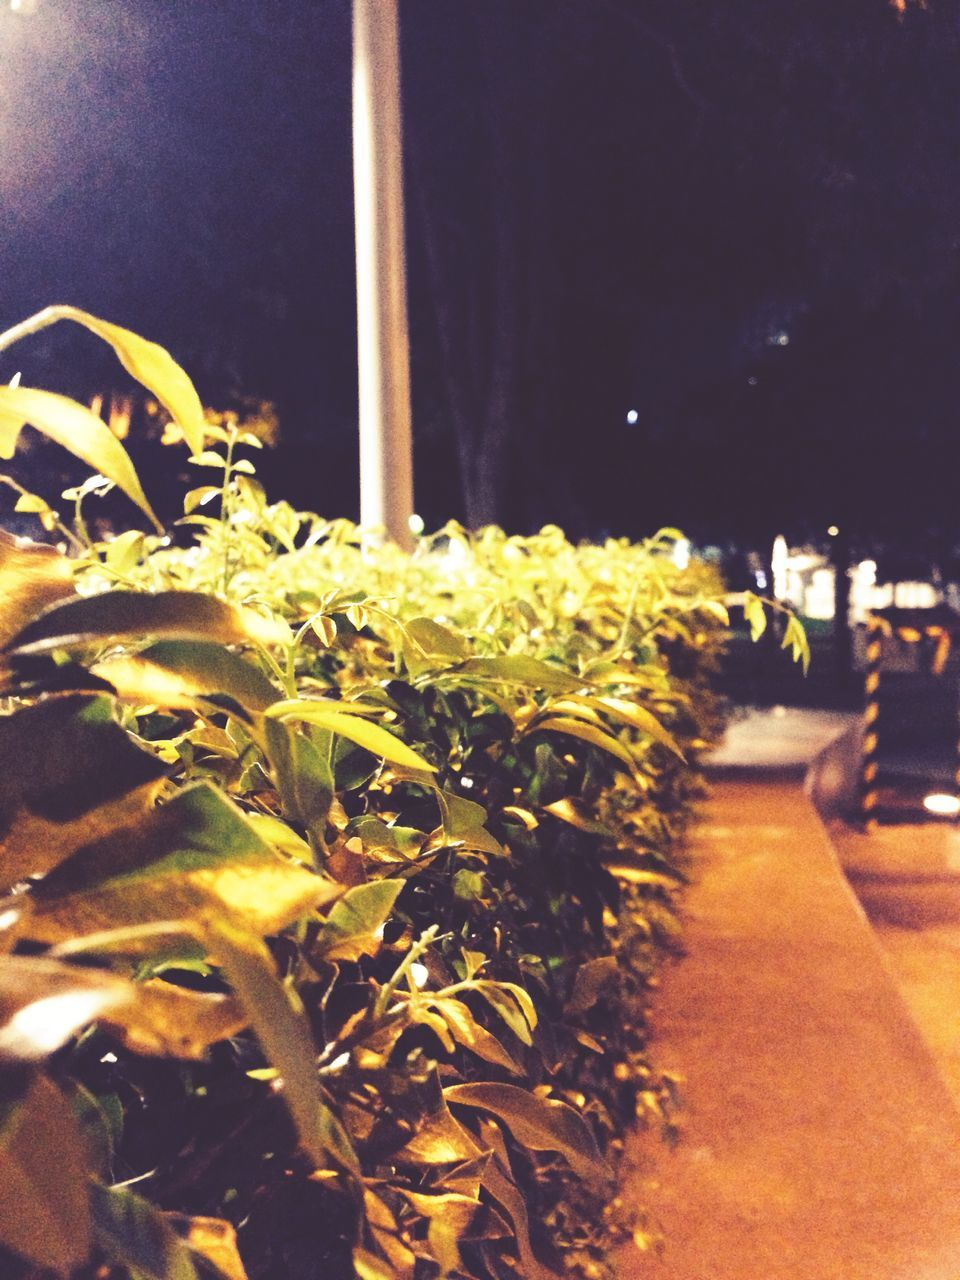 flower, growth, plant, nature, night, outdoors, no people, fragility, freshness, beauty in nature, close-up, flower head